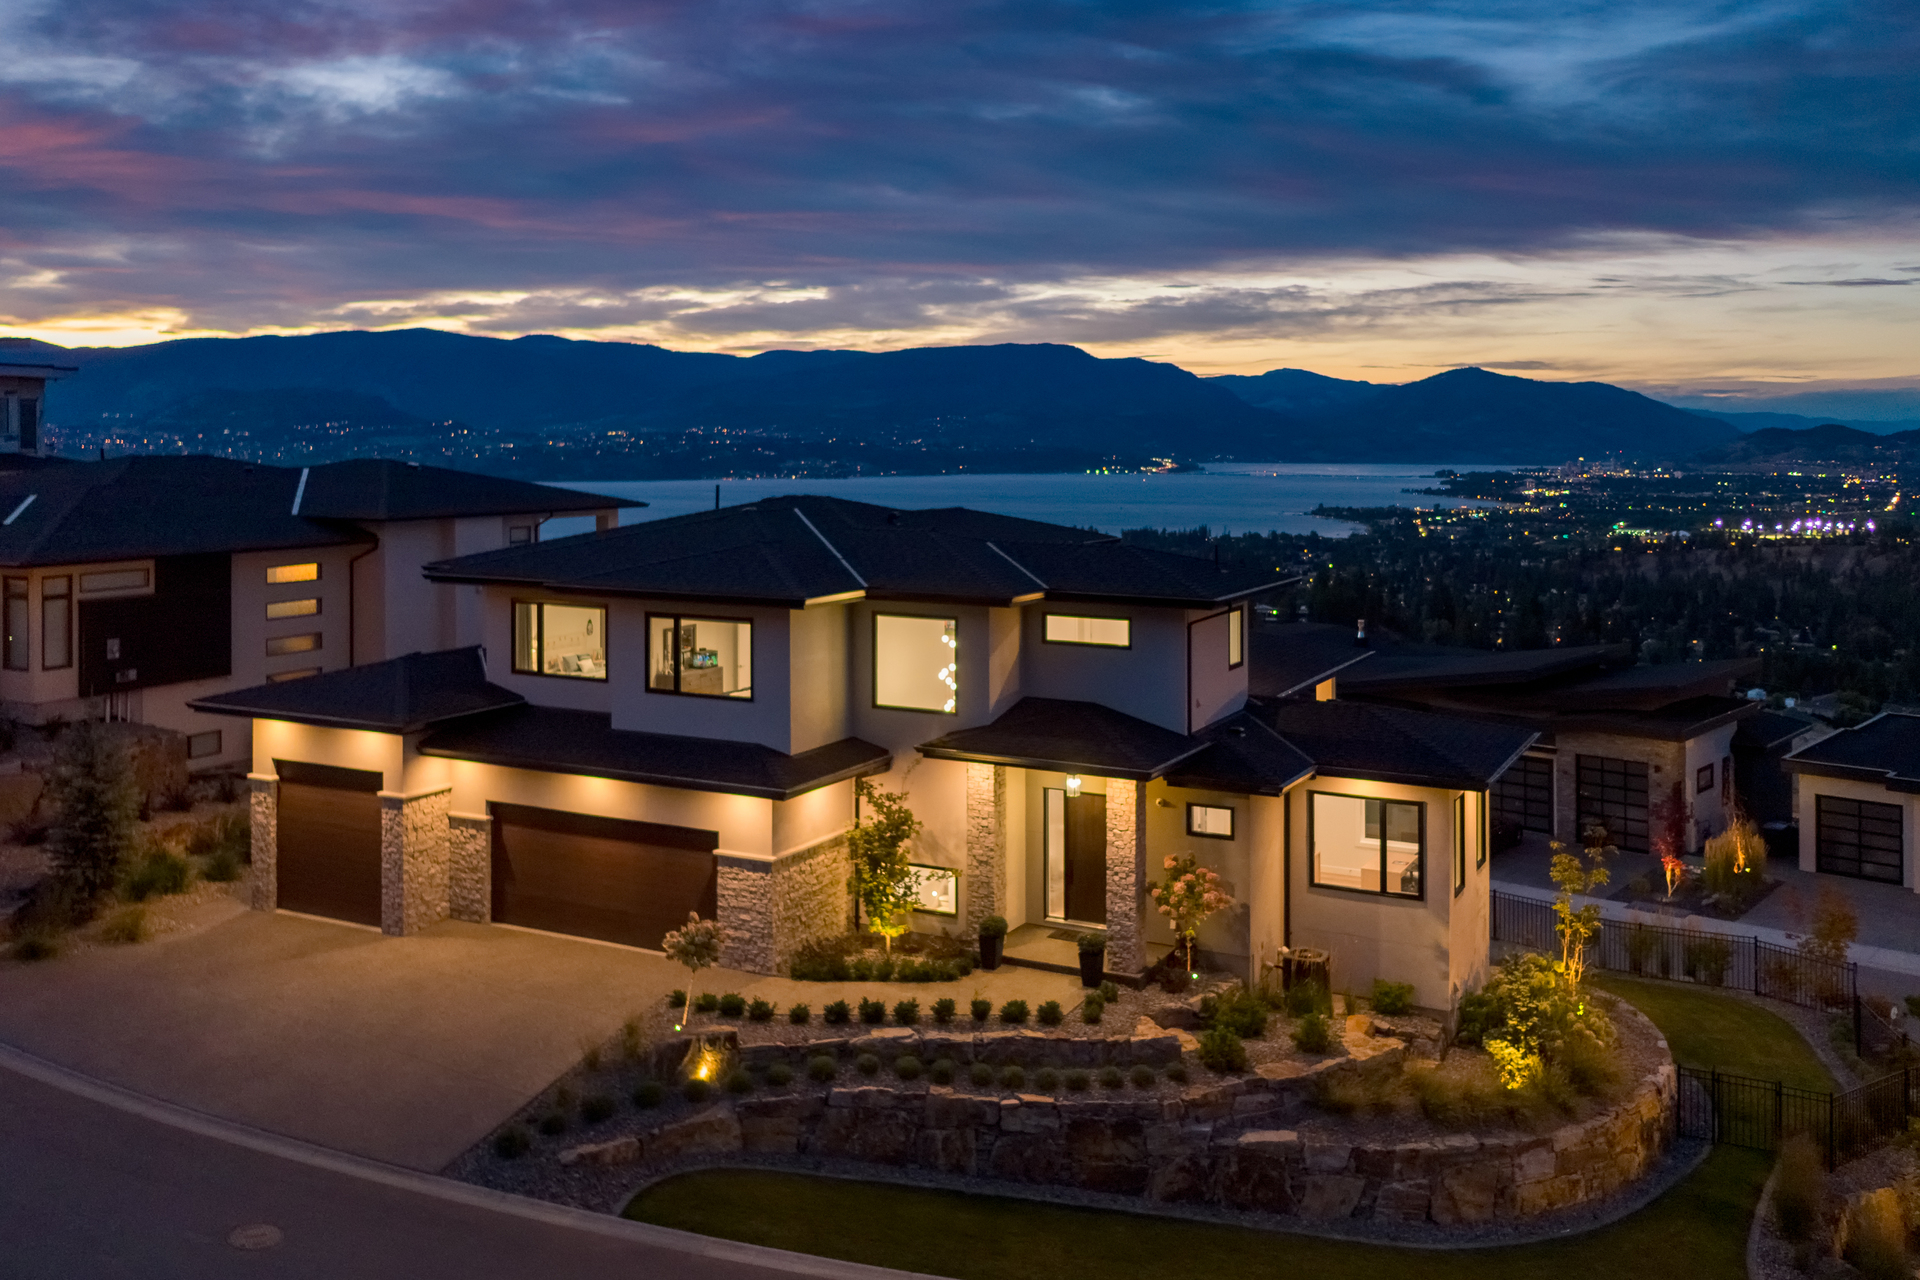 dji_0137-edit at 1010 Lakecrest Court, Kelowna, Central Okanagan